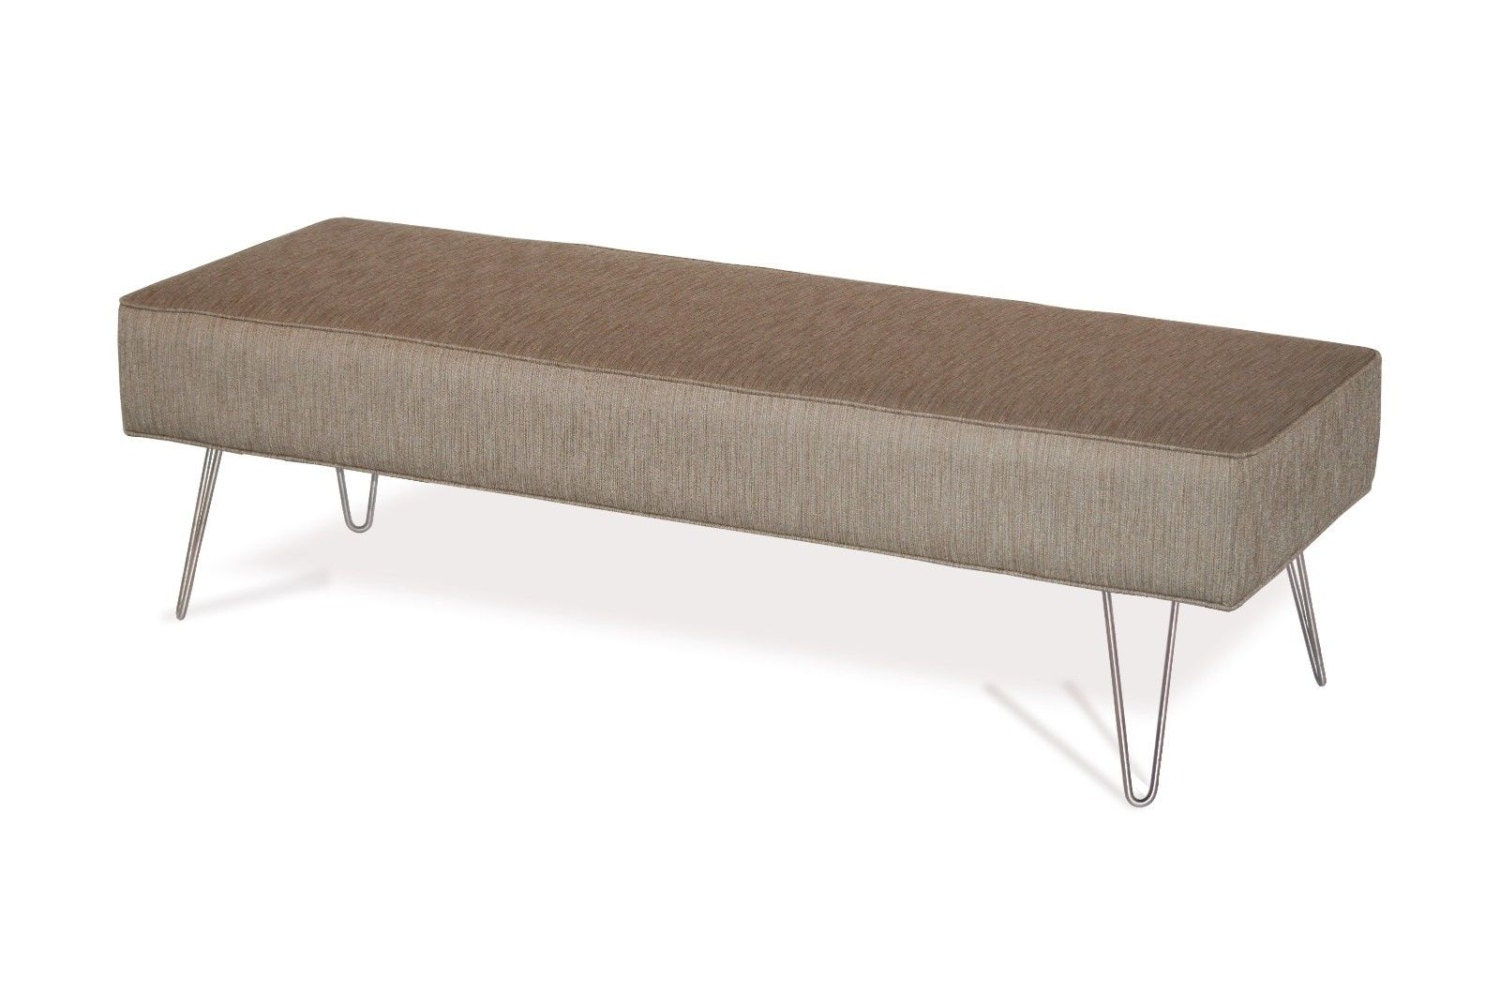 Mid Century Modern Fabric Upholstered Bench Ottoman Coffee Table